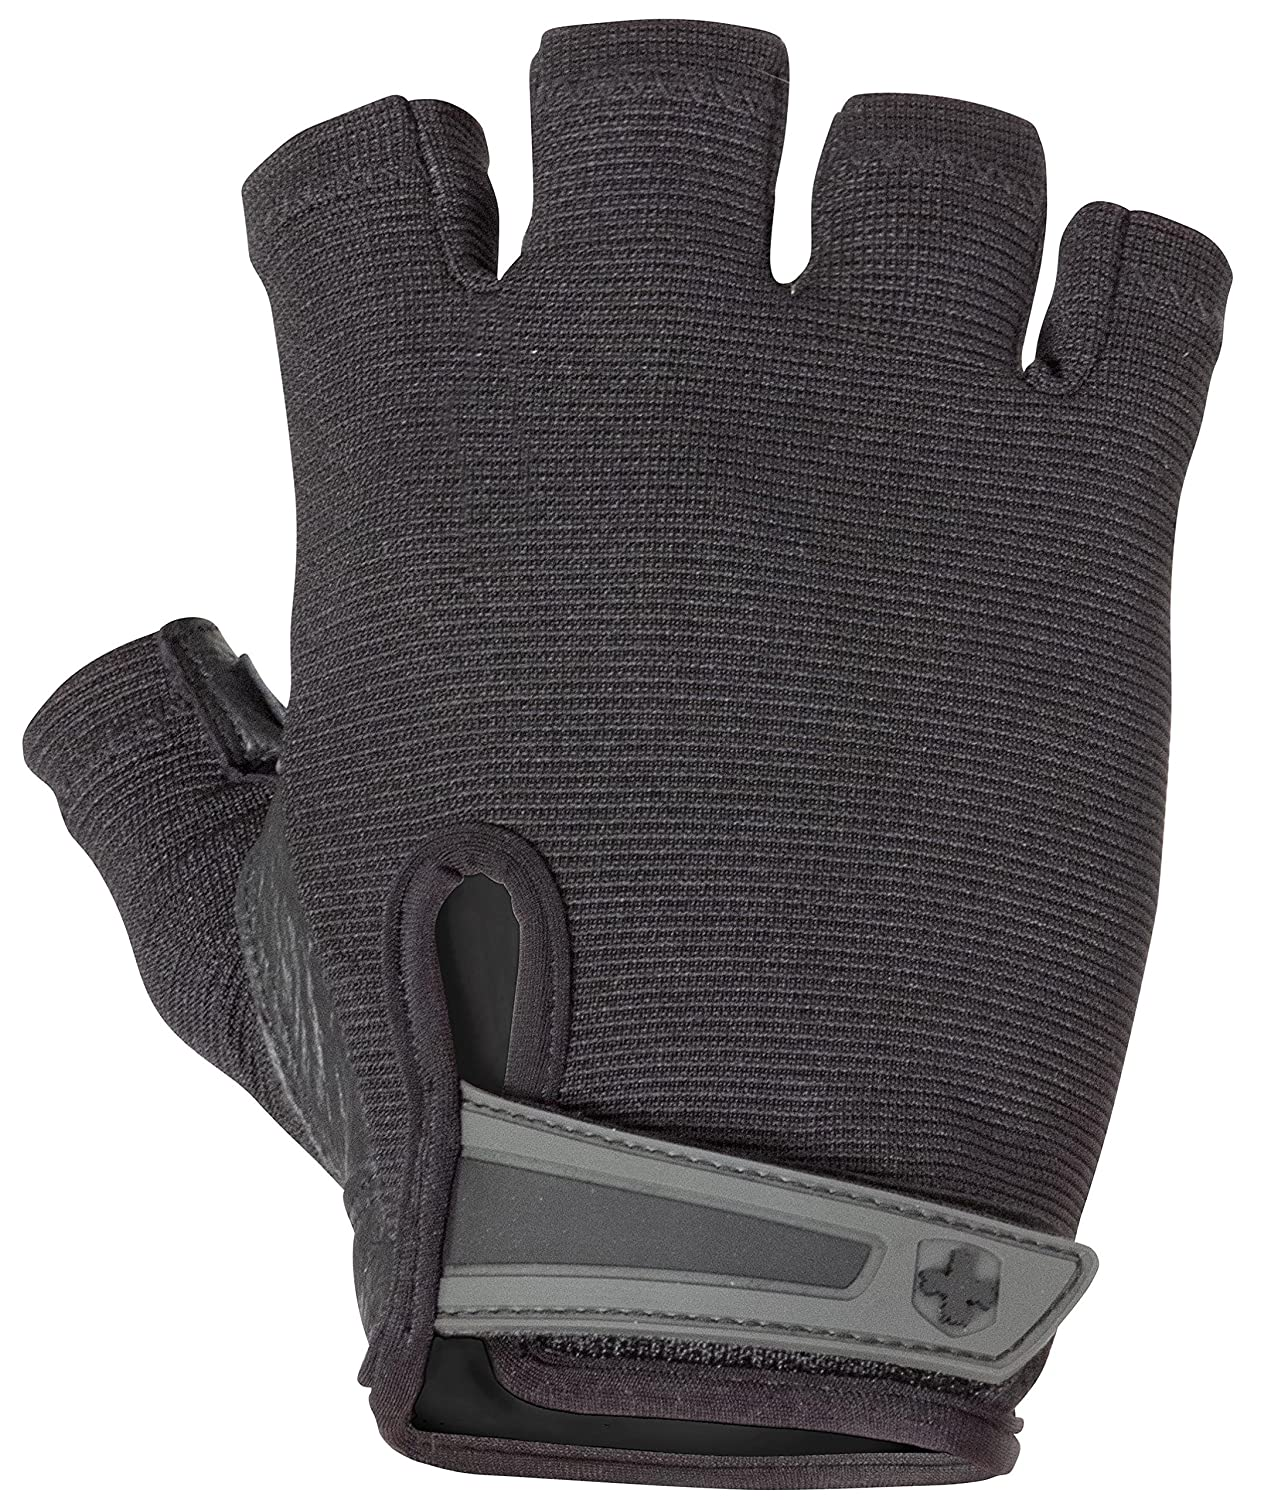 Womens leather gloves reviews - Amazon Com Harbinger Men S Power Weightlifting Gloves With Stretchback Mesh And Leather Palm Pair Large Exercise Gloves Sports Outdoors